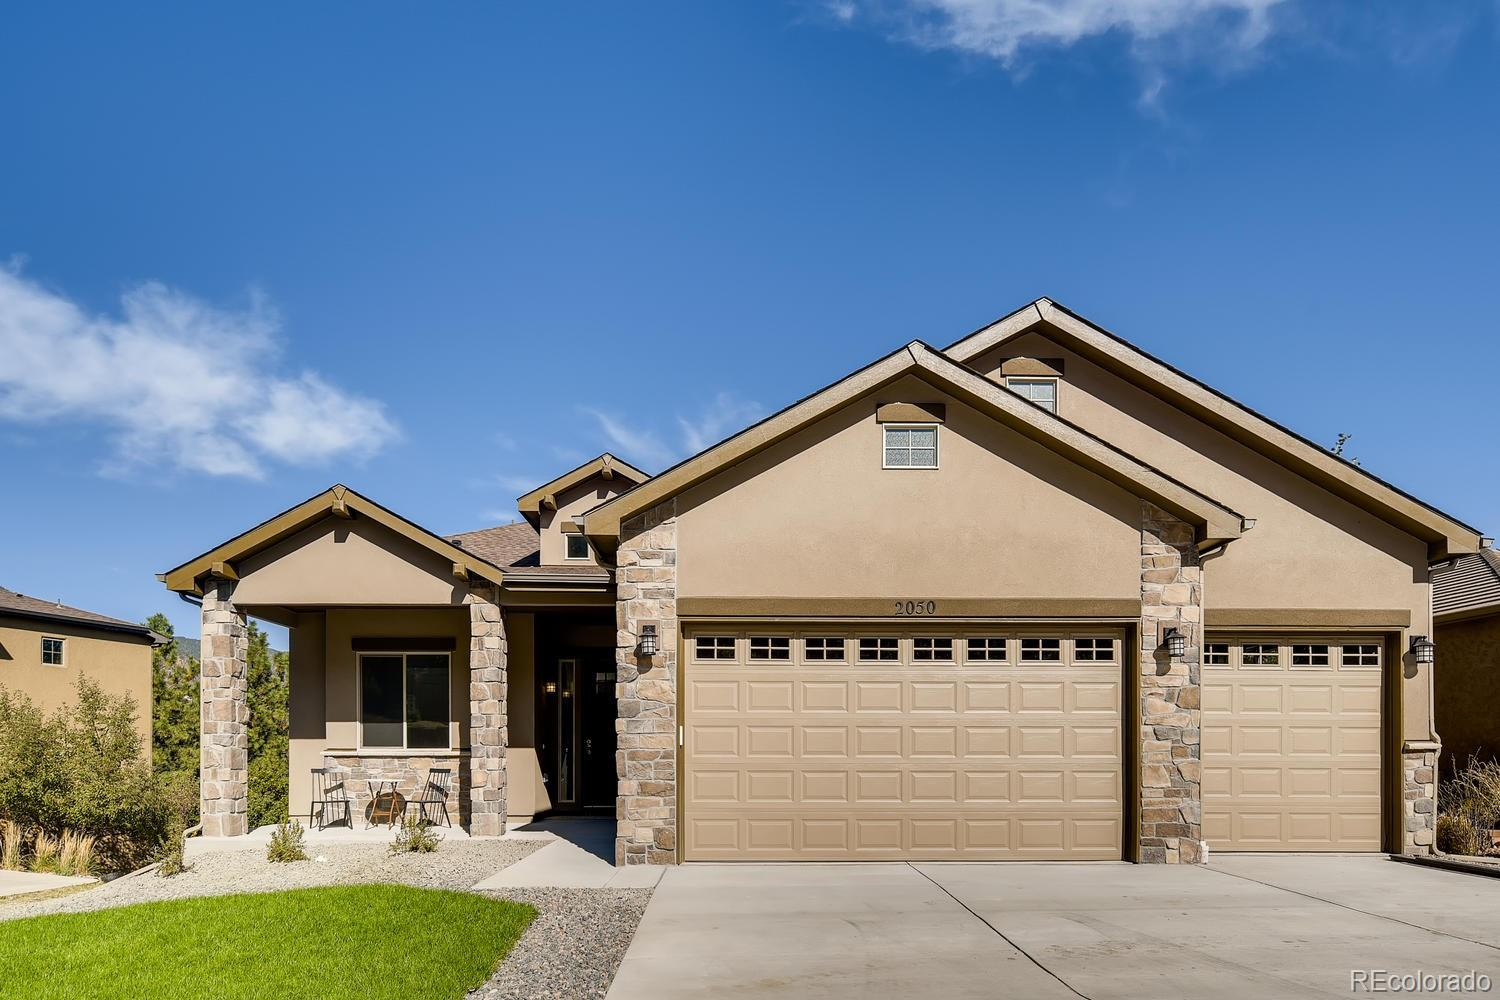 2050 Safe Harbor Court, Colorado Springs, CO 80919 - Colorado Springs, CO real estate listing